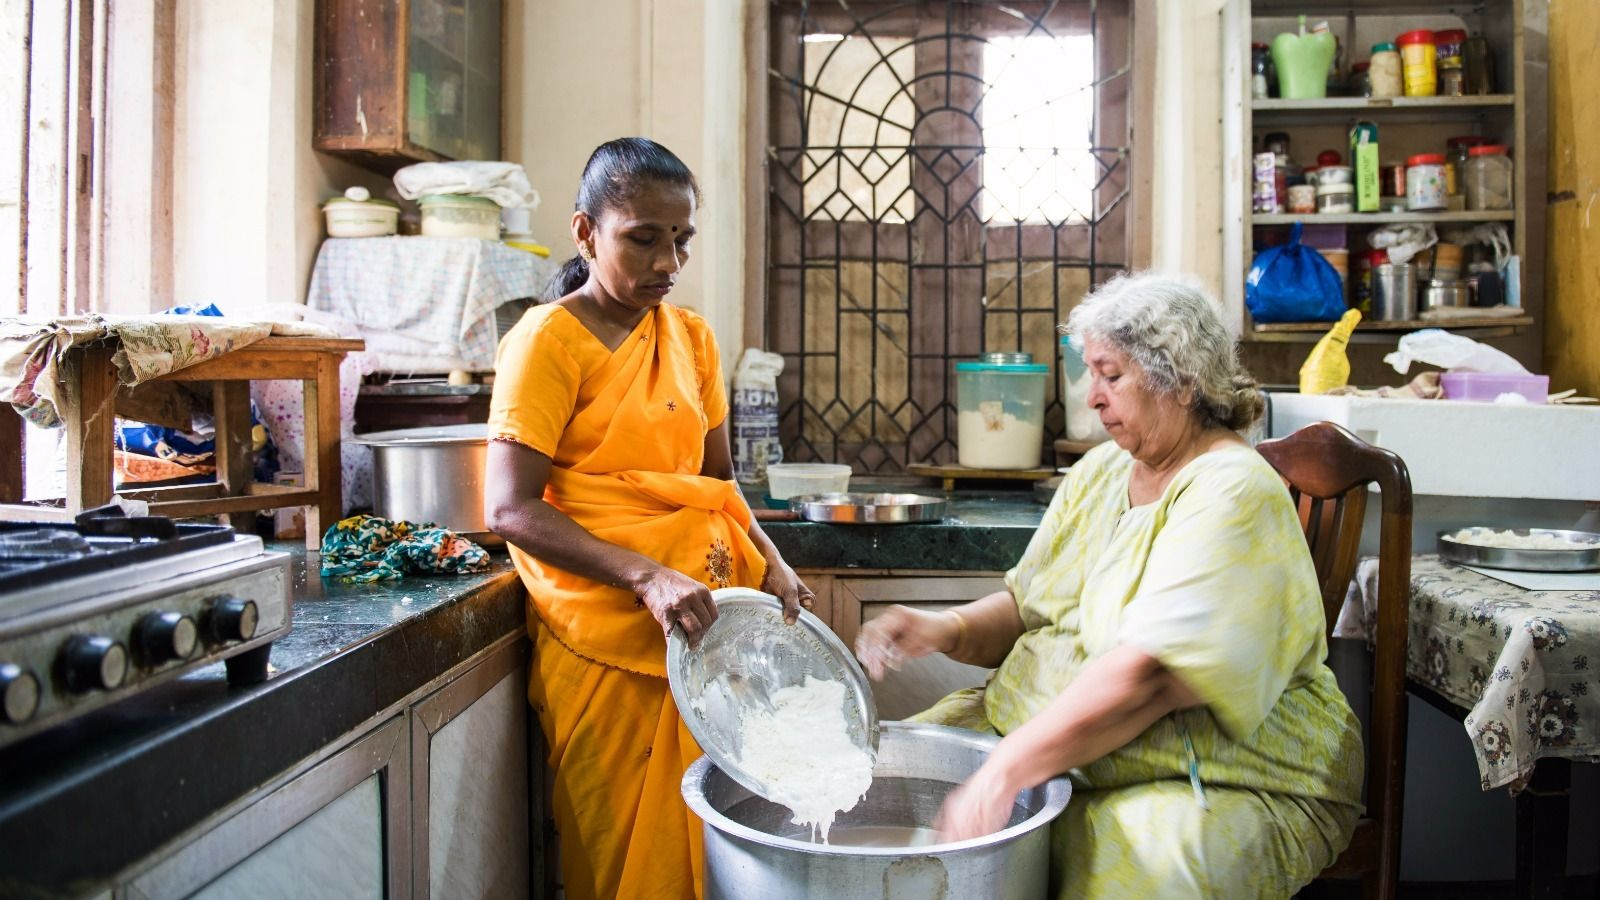 Suneka (left) adds 'chick' (wheat gluten) to coconut milk to make Sharona Hayeems's sweet milk custard called halwa.